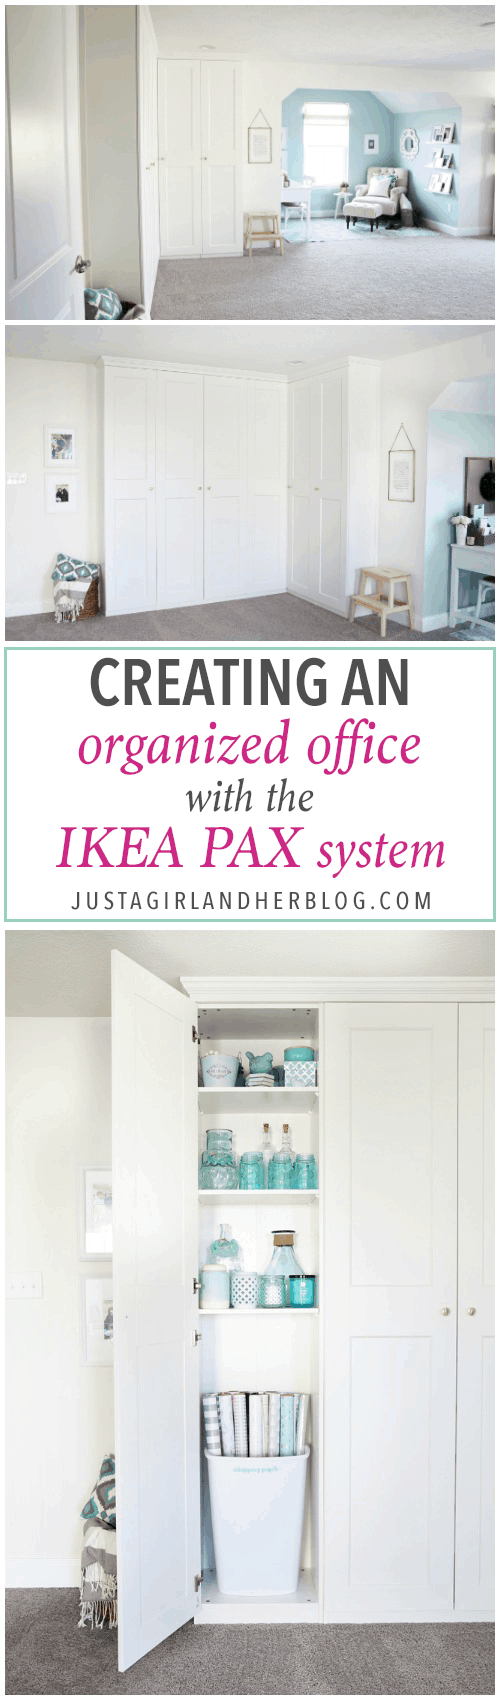 Home- Creating Built In Office Storage with the IKEA PAX system, organized office, home office organization, PAX wardrobe with GRIMO doors as office storage, how to design and install the IKEA PAX system, Creating an Organized Office with the IKEA PAX System